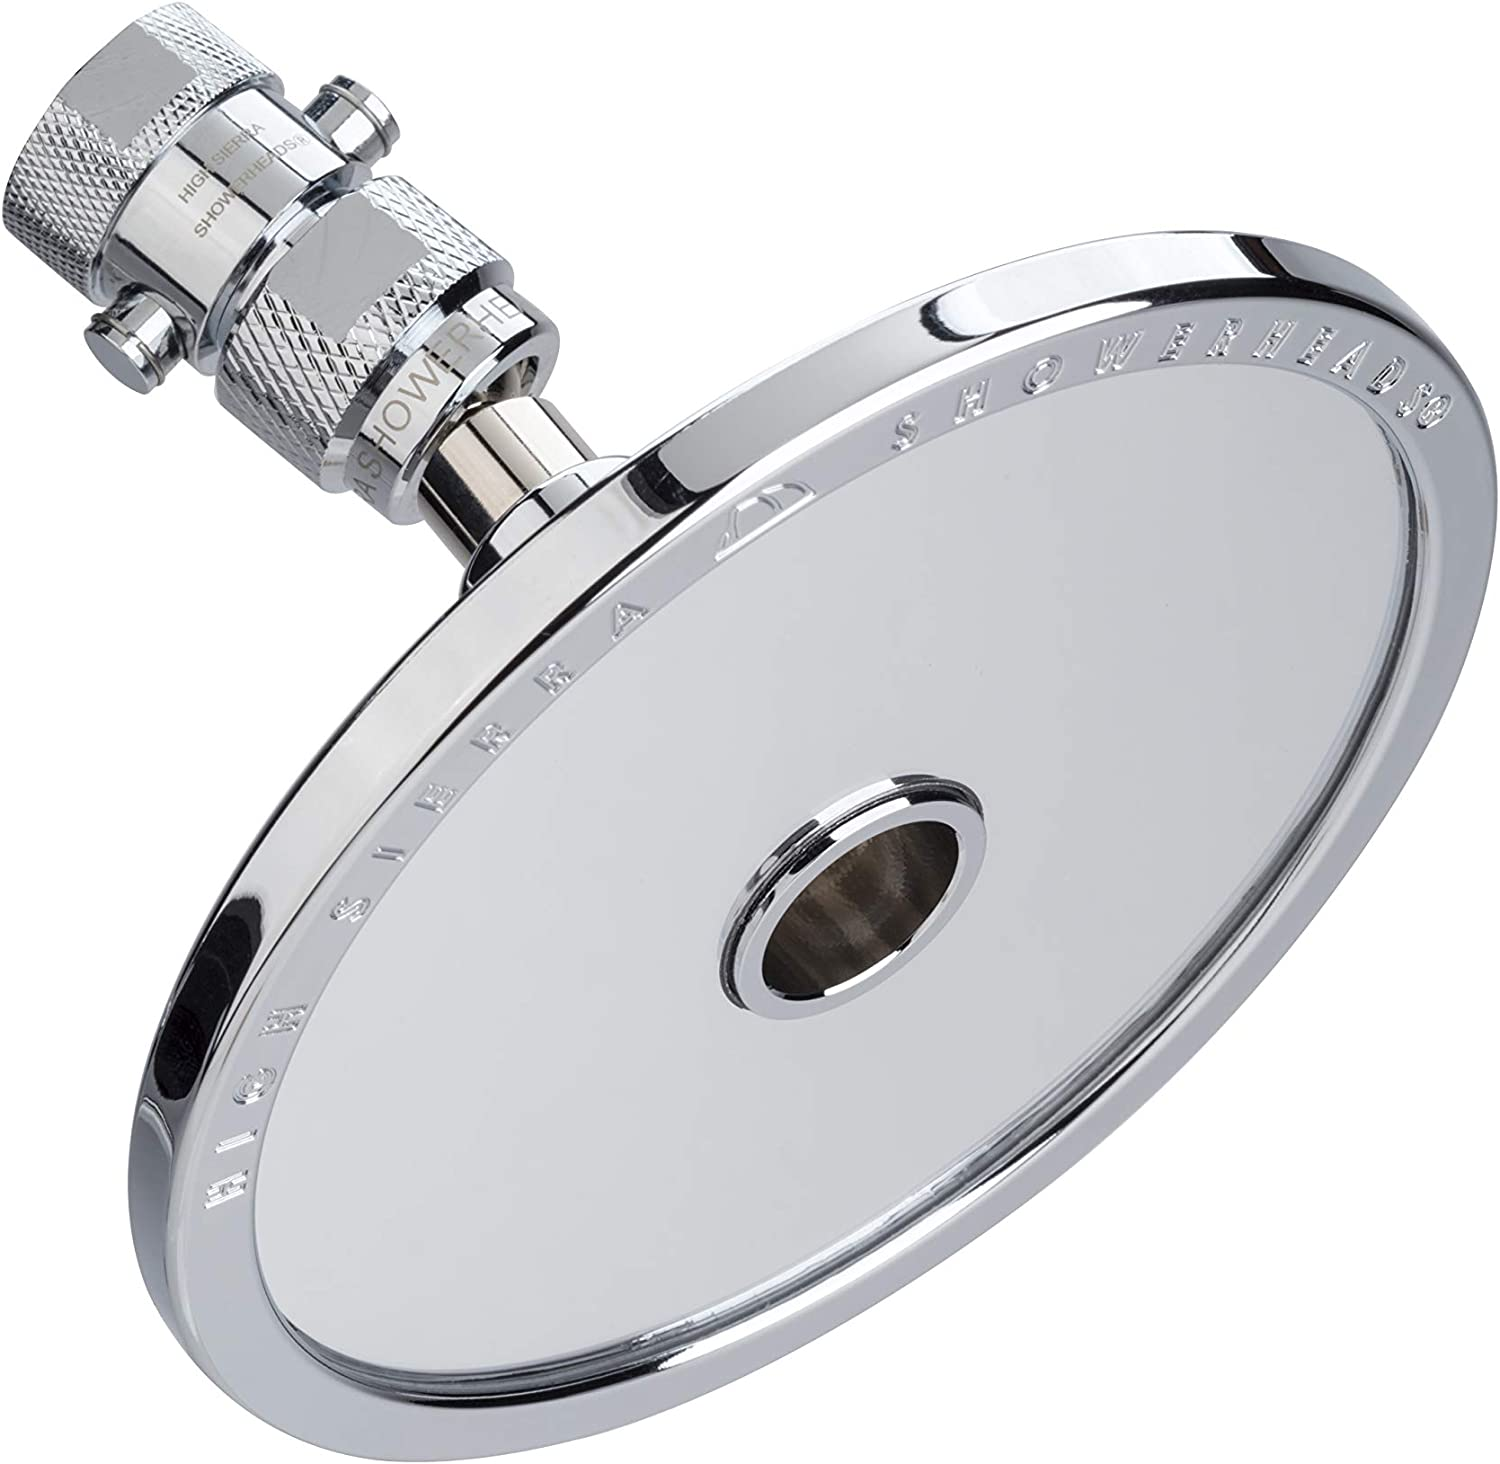 High Sierra s NEW Reflections Shower Head and Fogless Shaving Mirror In One. Made of Solid Aluminum that Naturally Heats Up While Showering. Guaranteed to Never Fog